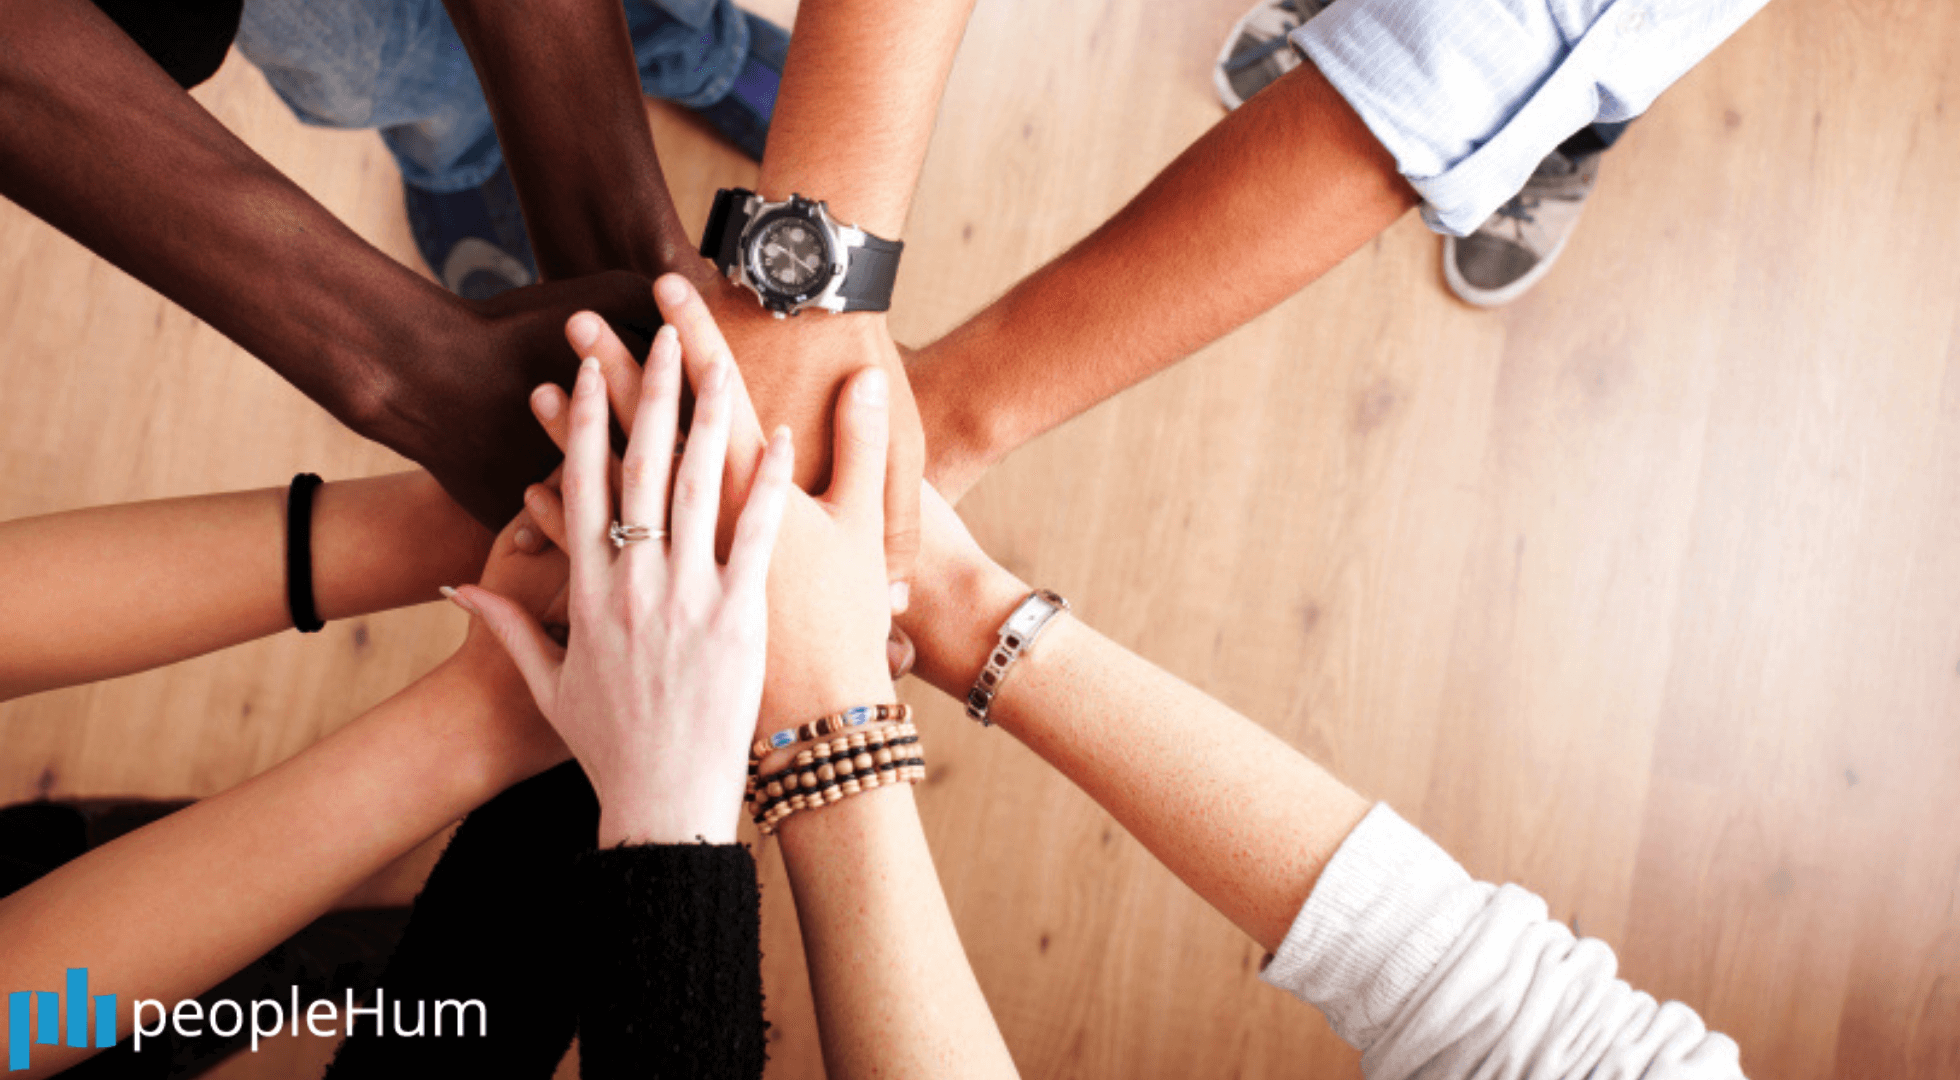 Why HR teams should recognize and reward a 'mission-centric' work ethic